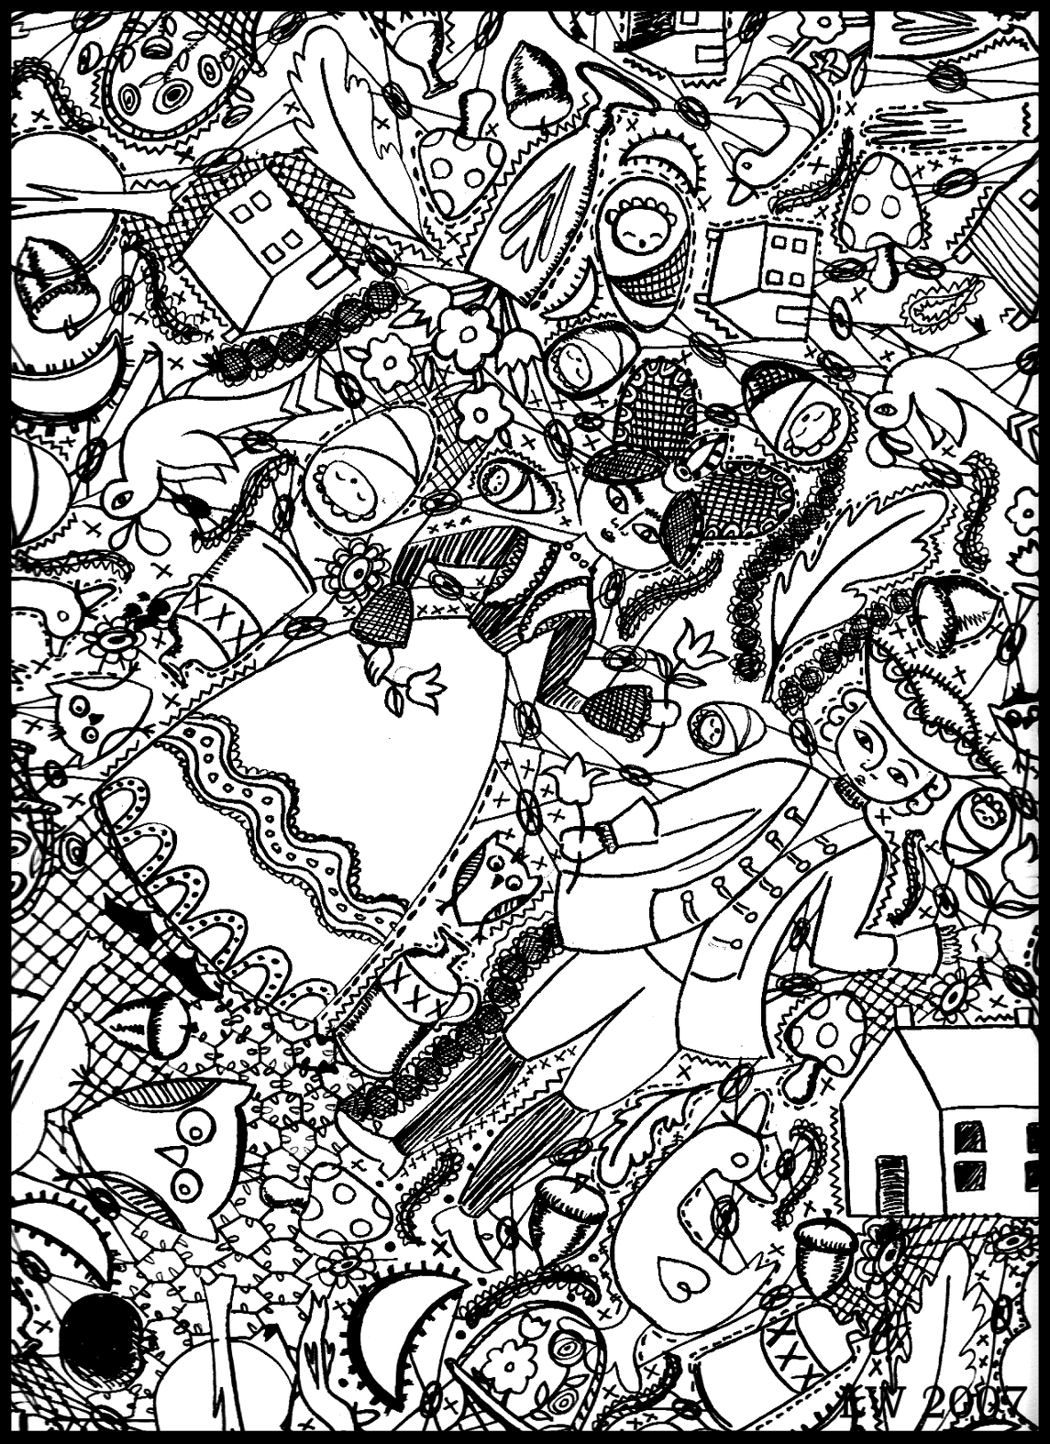 art coloring pages free | Free Doodle Art Coloring Pages - Coloring Home